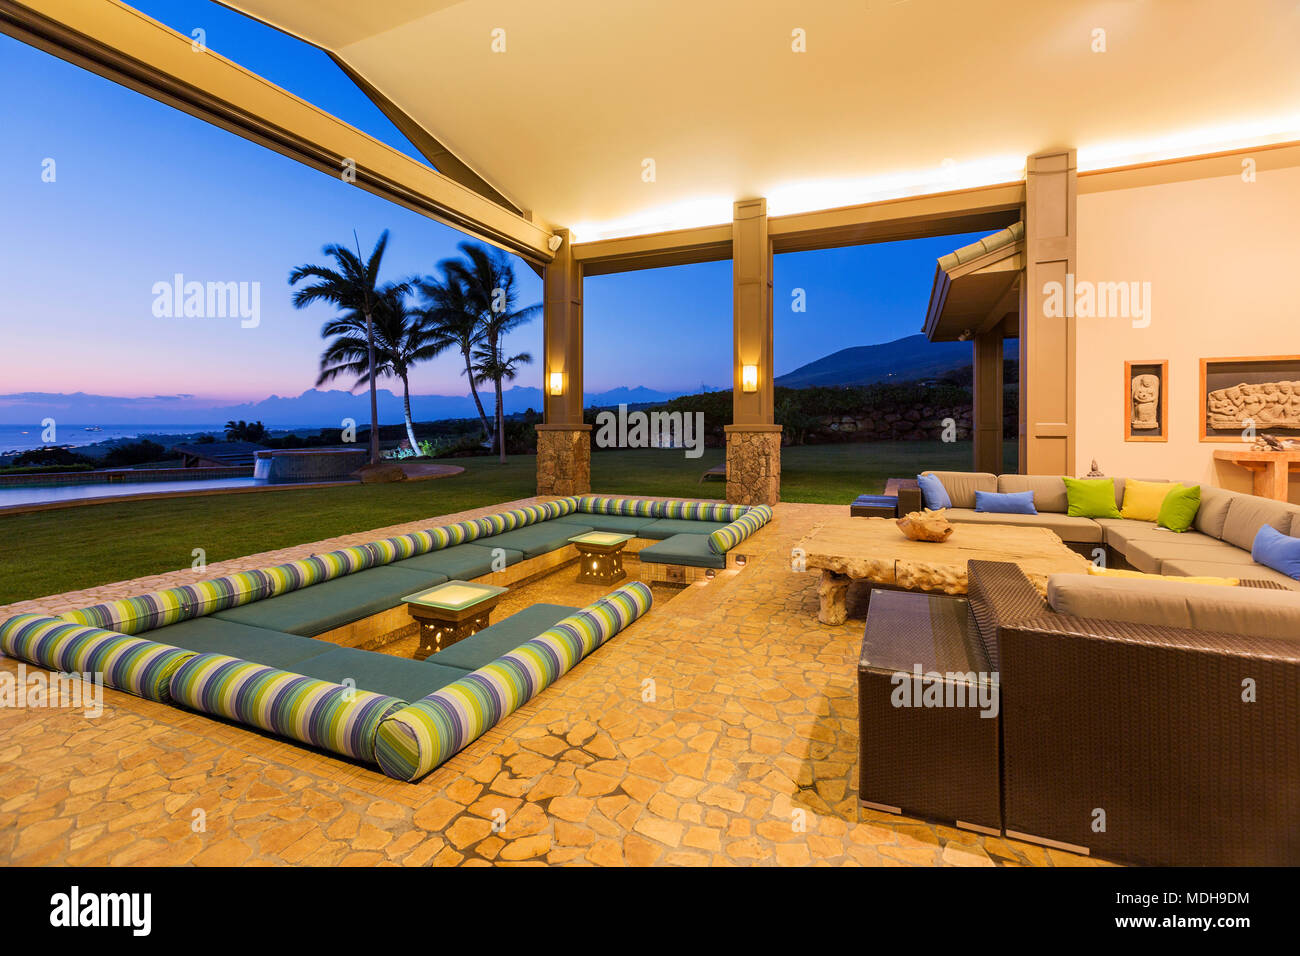 Beautiful Luxury Home, Exterior Patio Lounge At Sunset